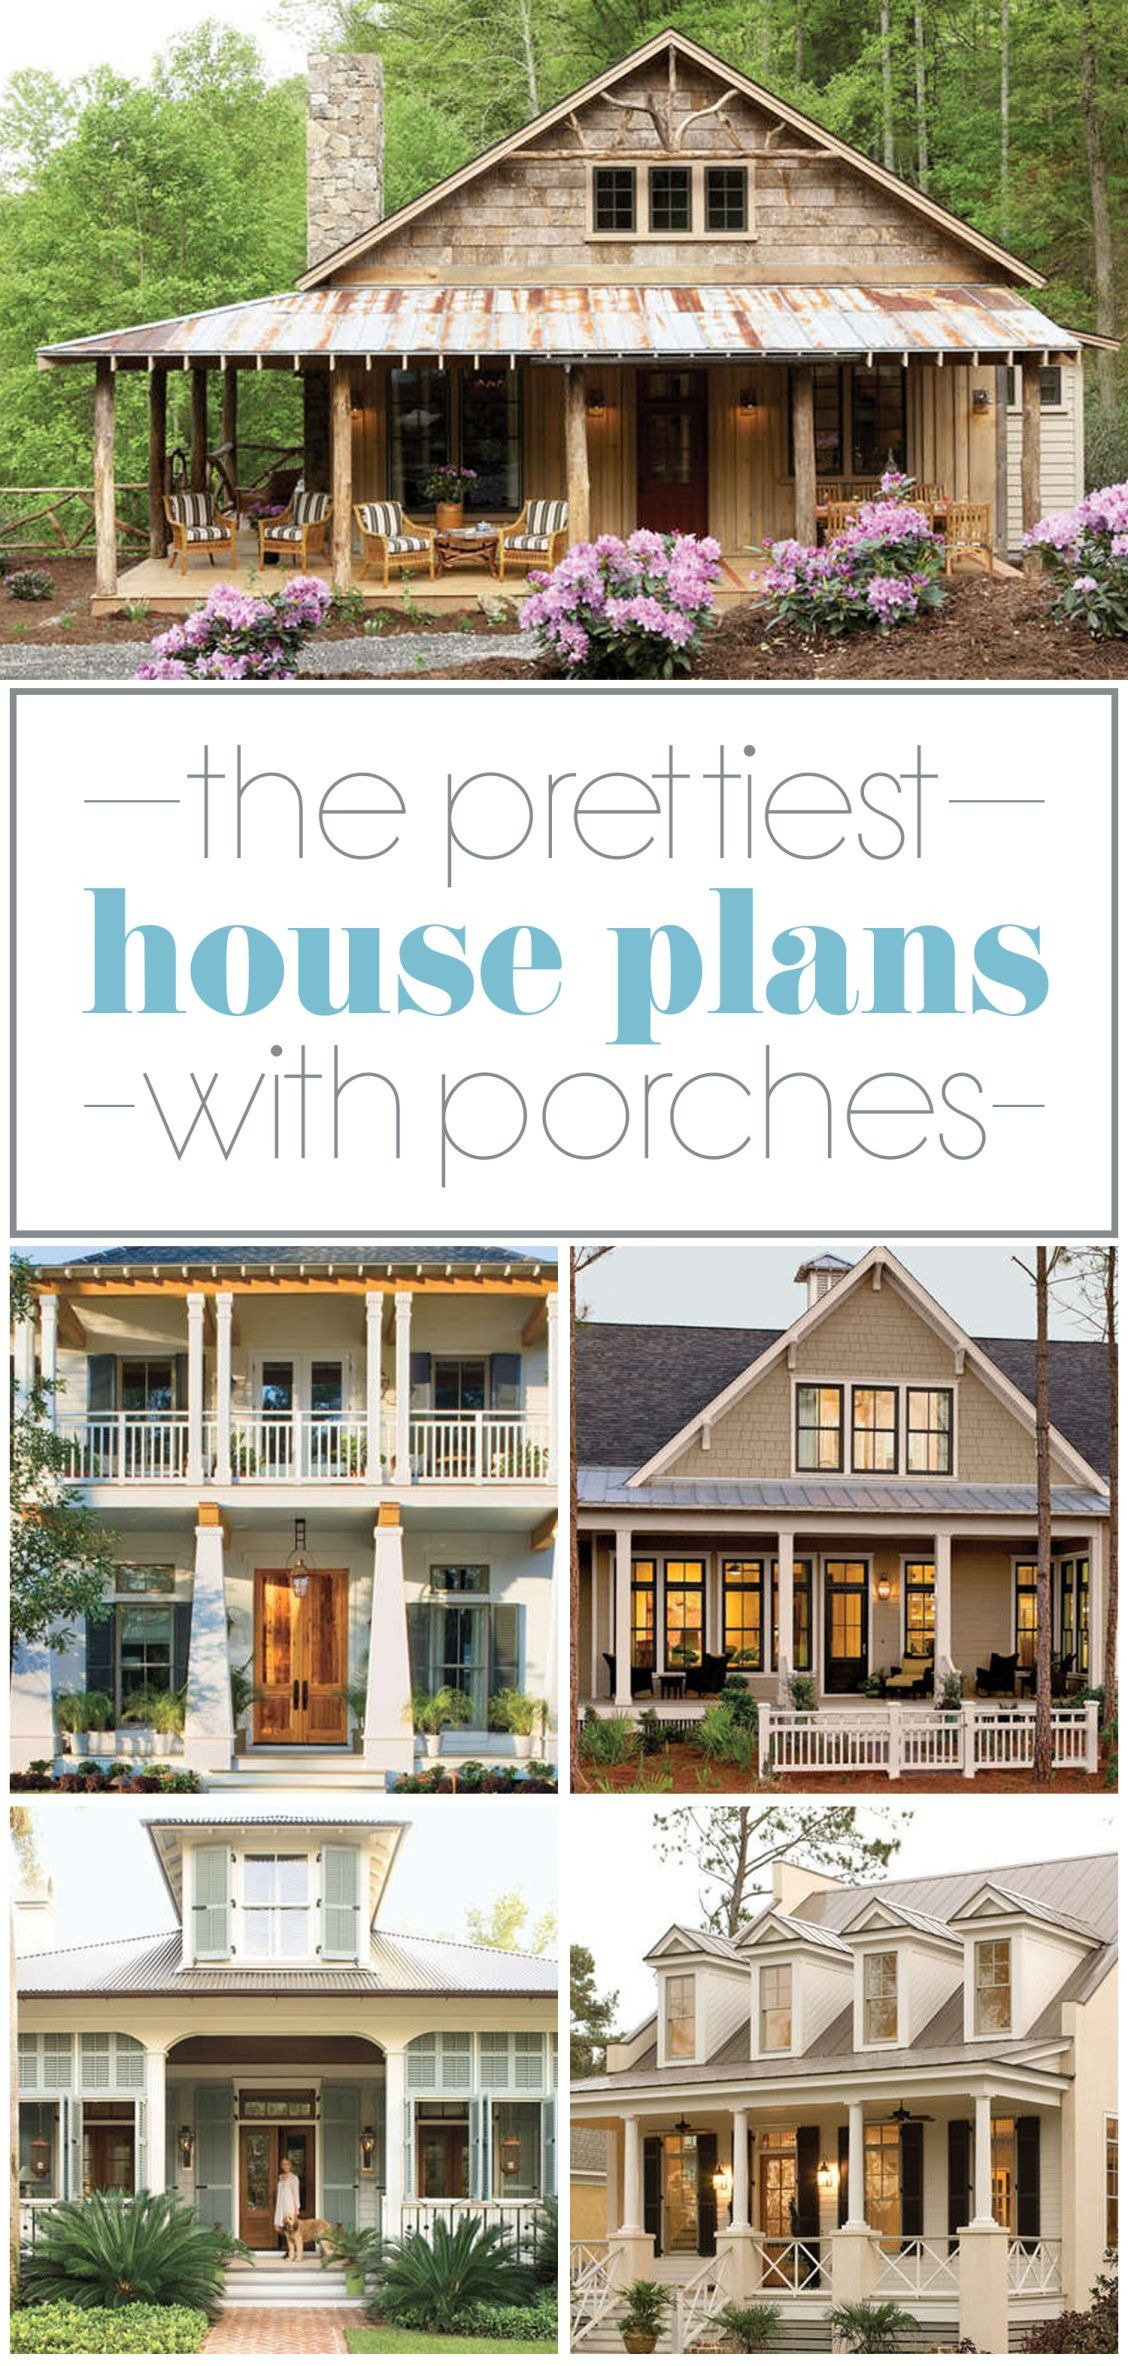 House Plans with Porch Inspirational 17 Pretty House Plans with Porches